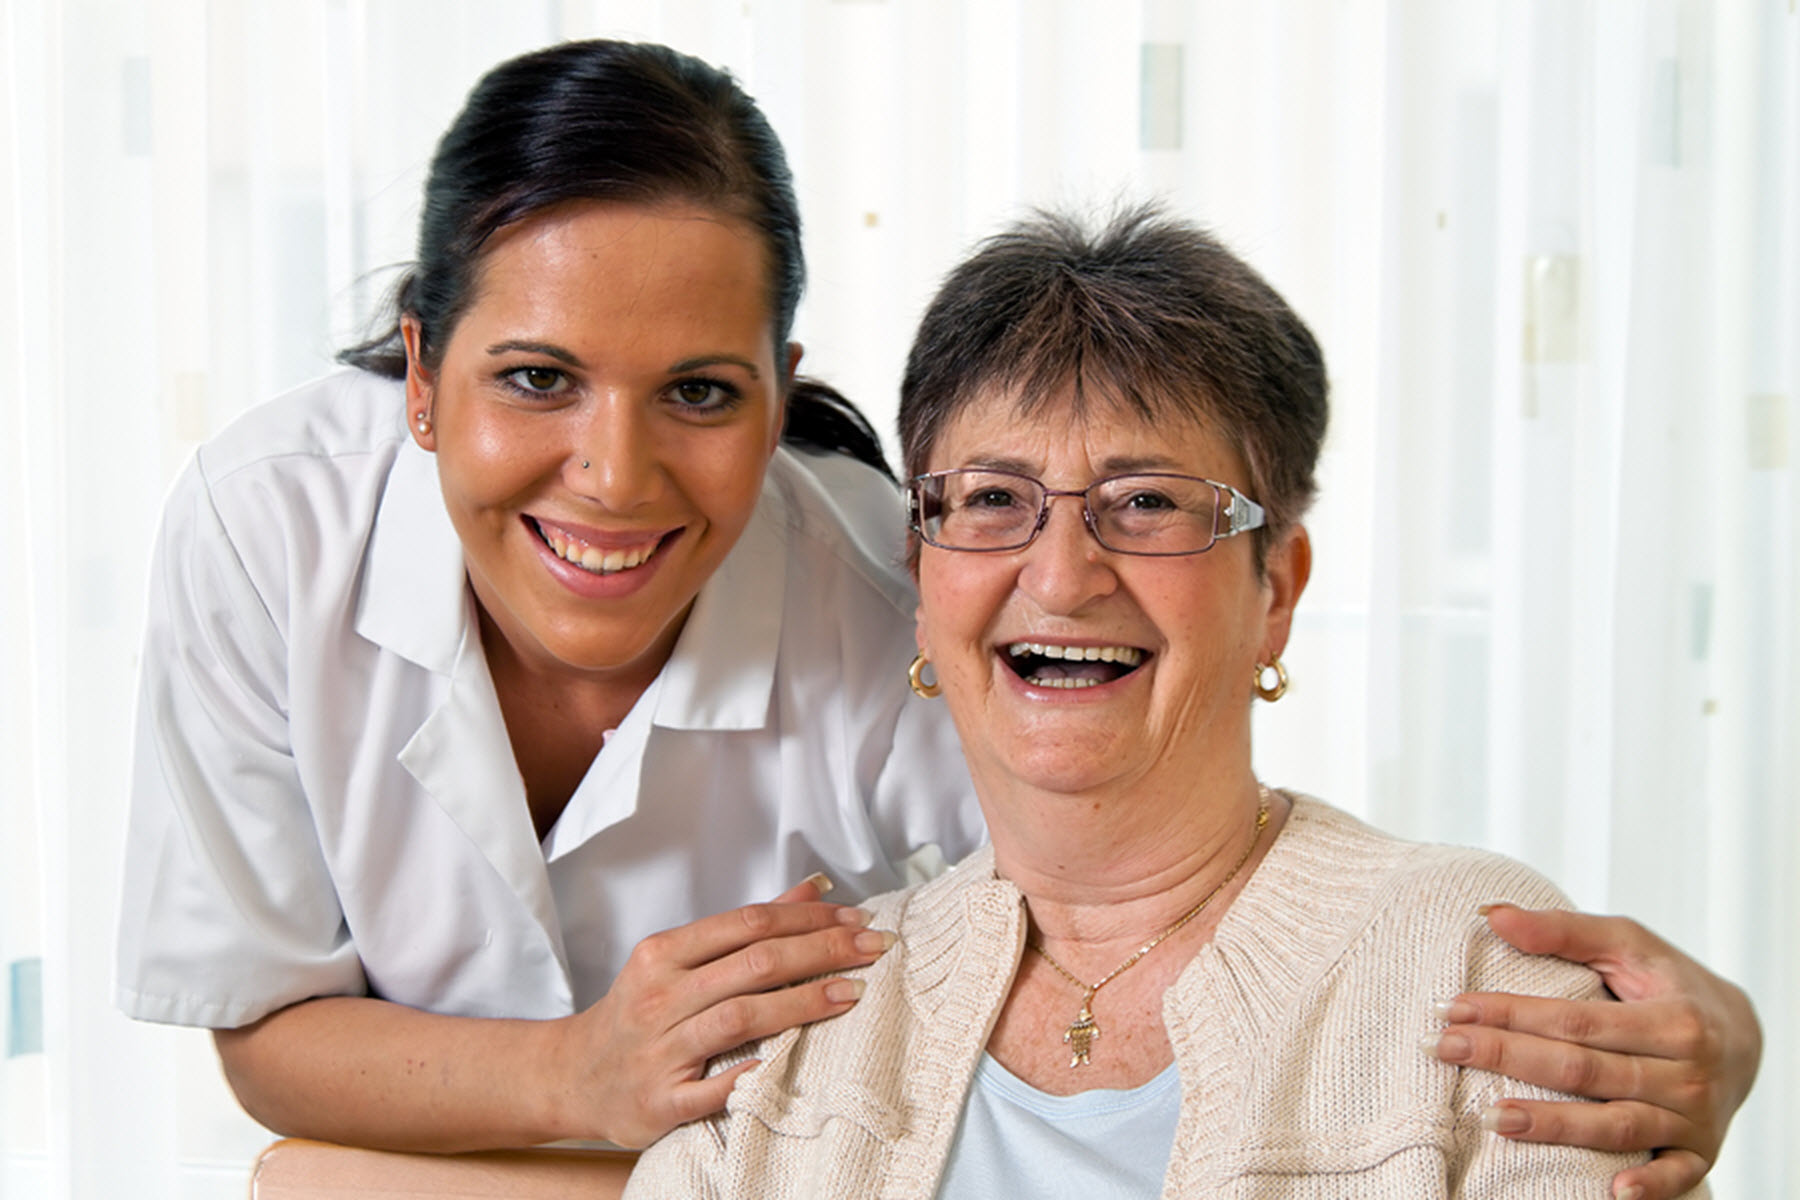 Caregiver in Monroeville PA: Hire a Home Care Provider